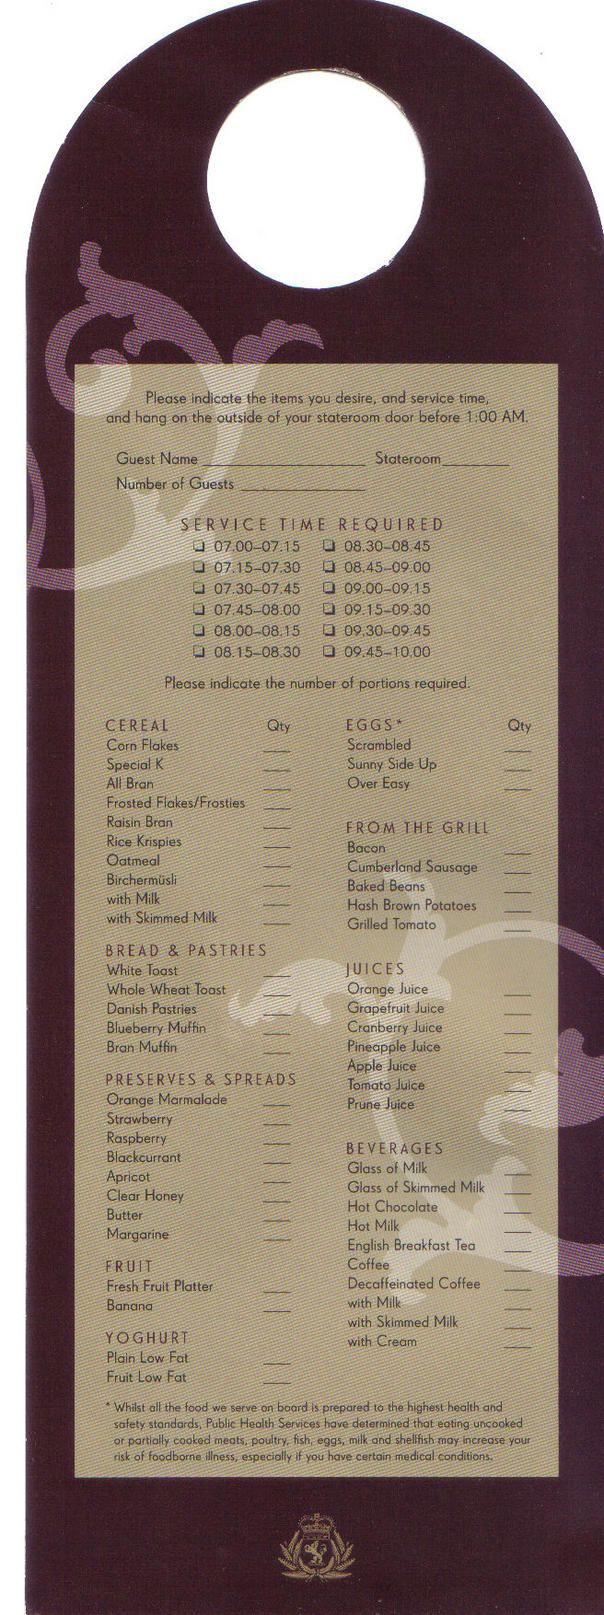 Cunard Room Service Menu